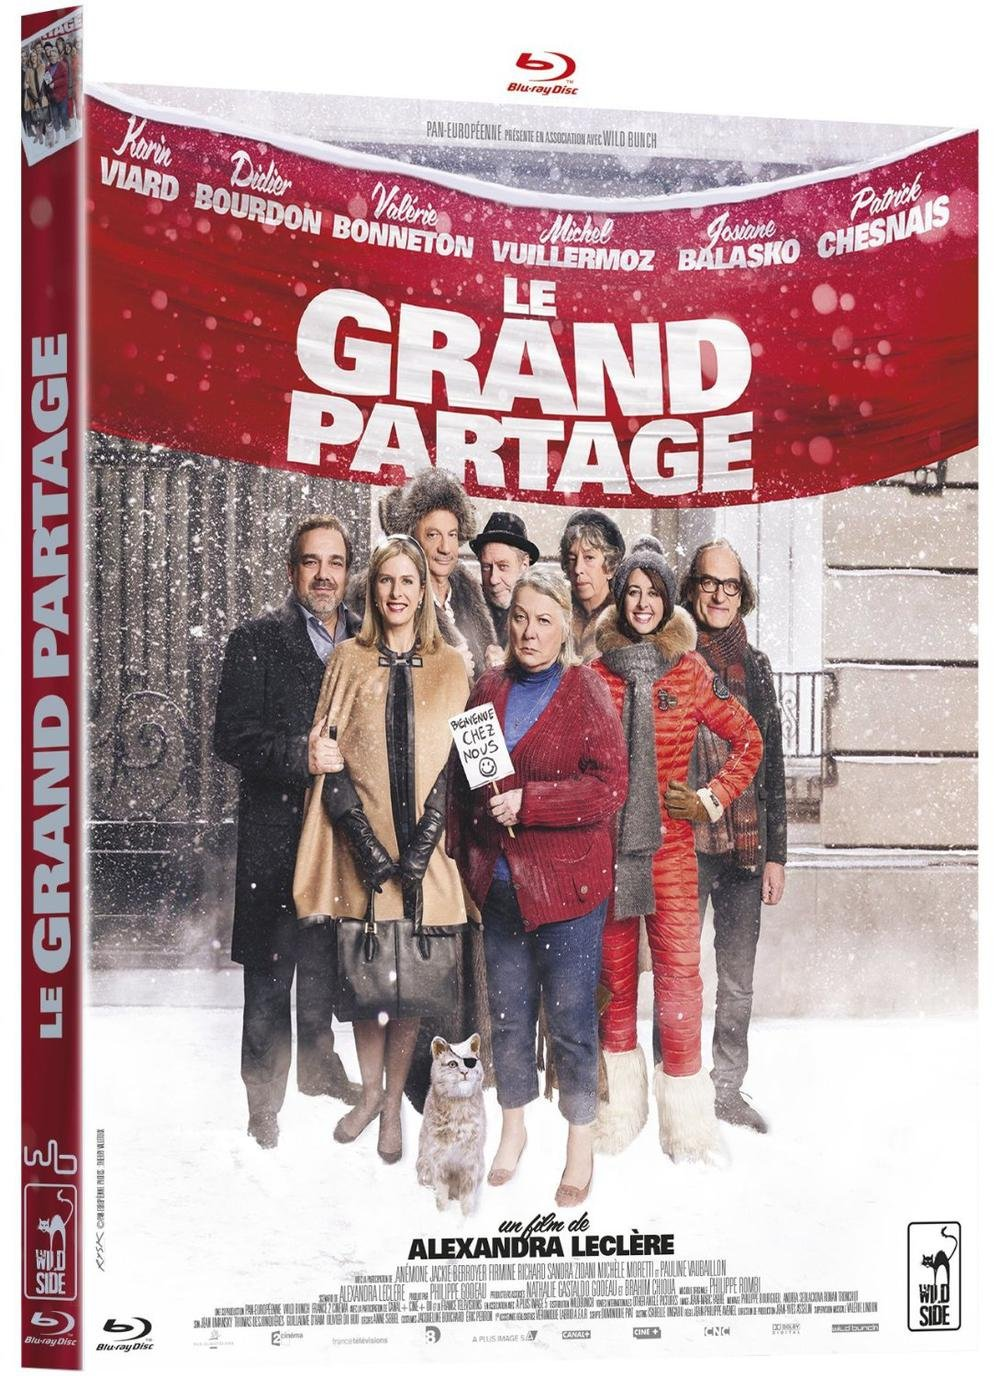 Le Grand partage FRENCH BLURAY 1080p